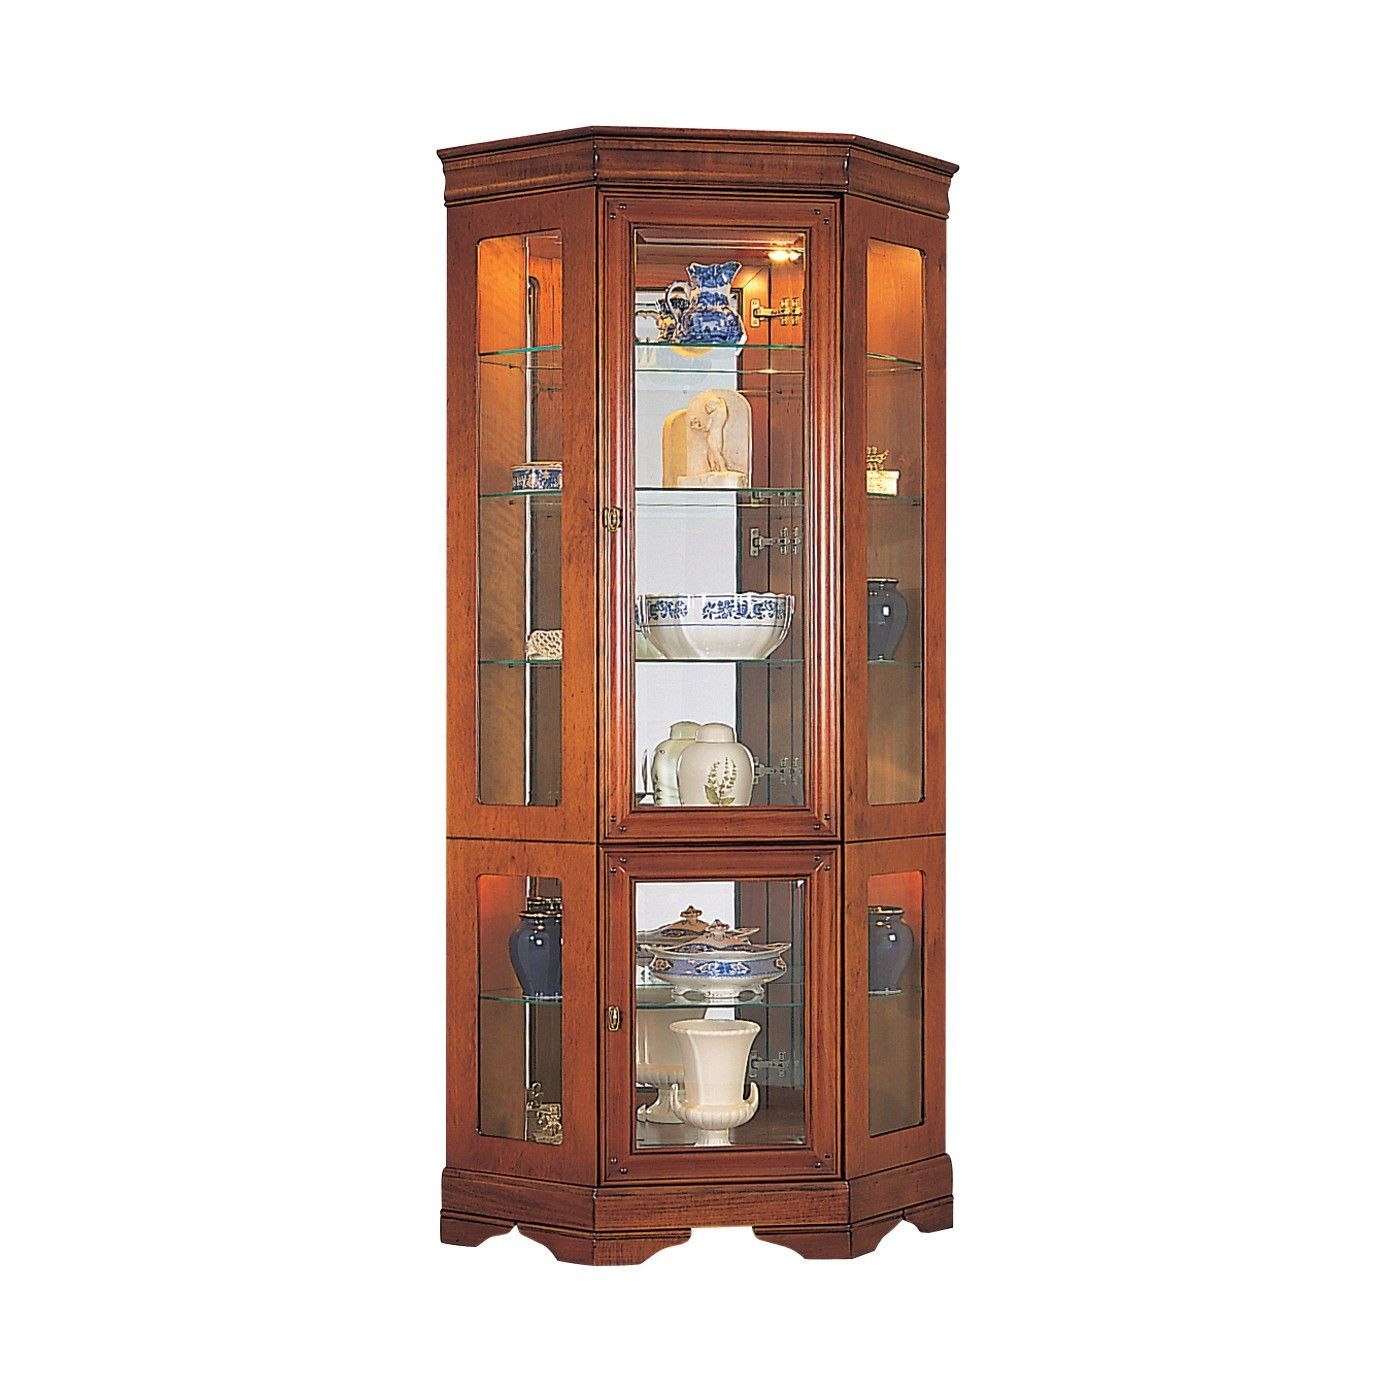 50 Teak Display Cabinet Glass Doors Kitchen Remodeling Ideas On A